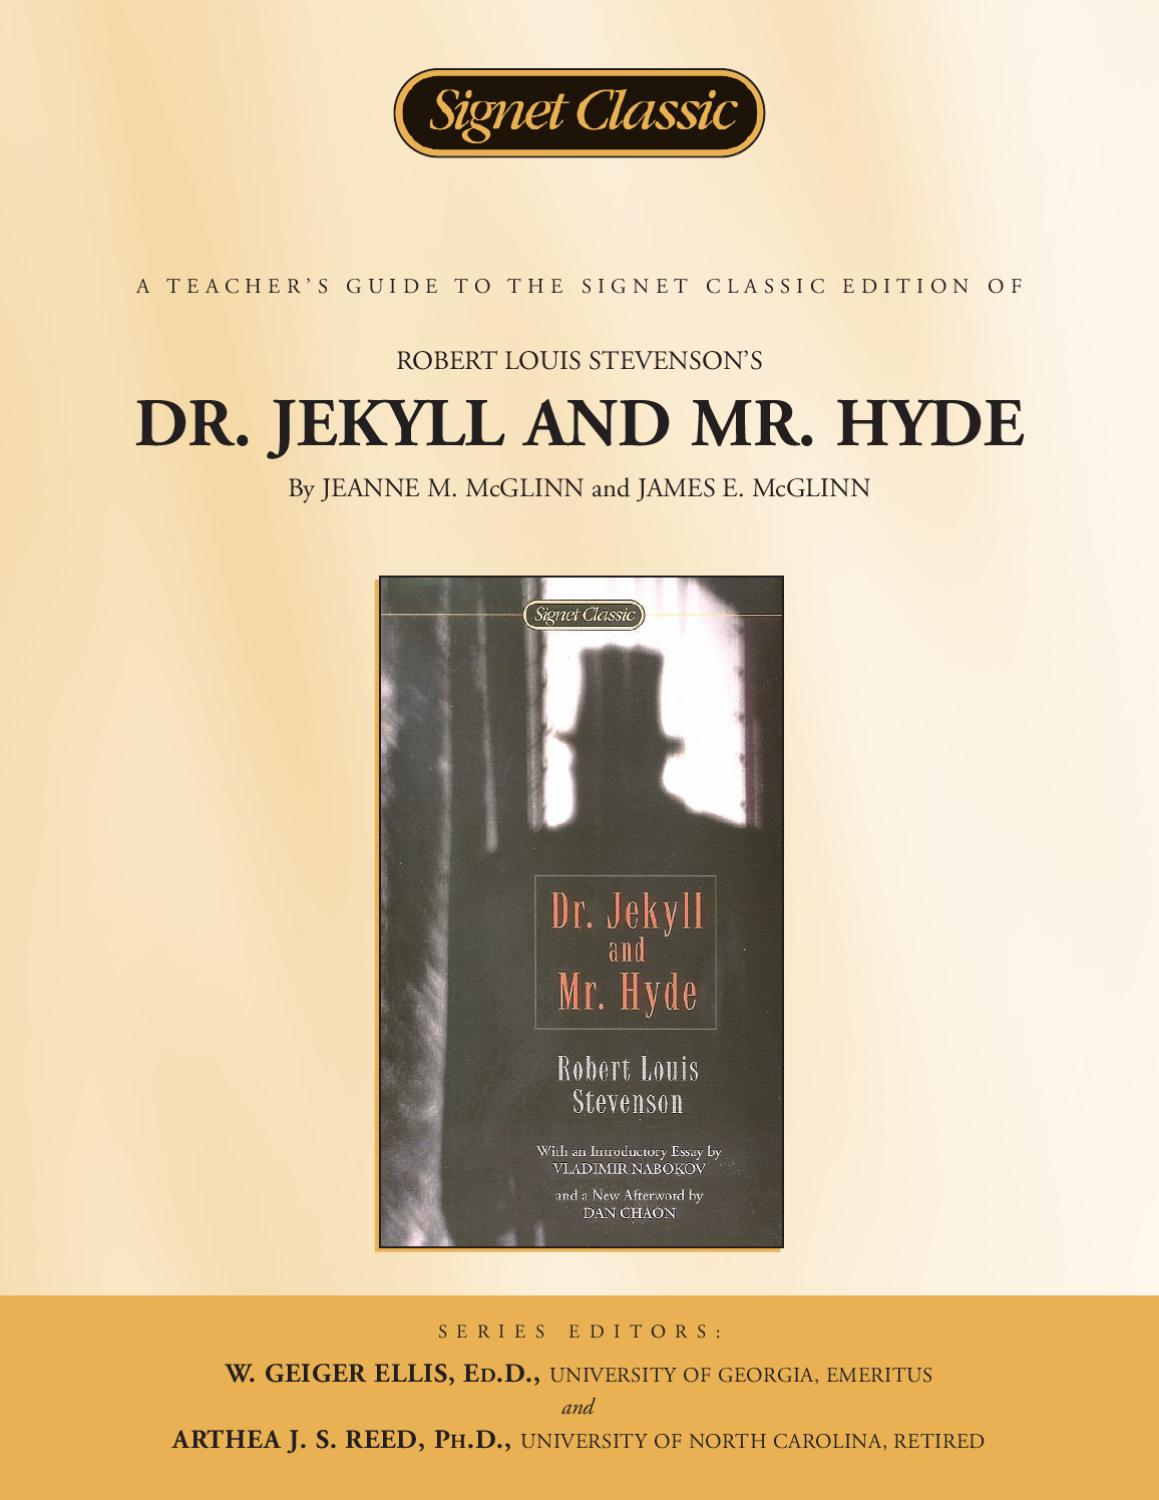 books to compare to dr jekyll and mr hyde